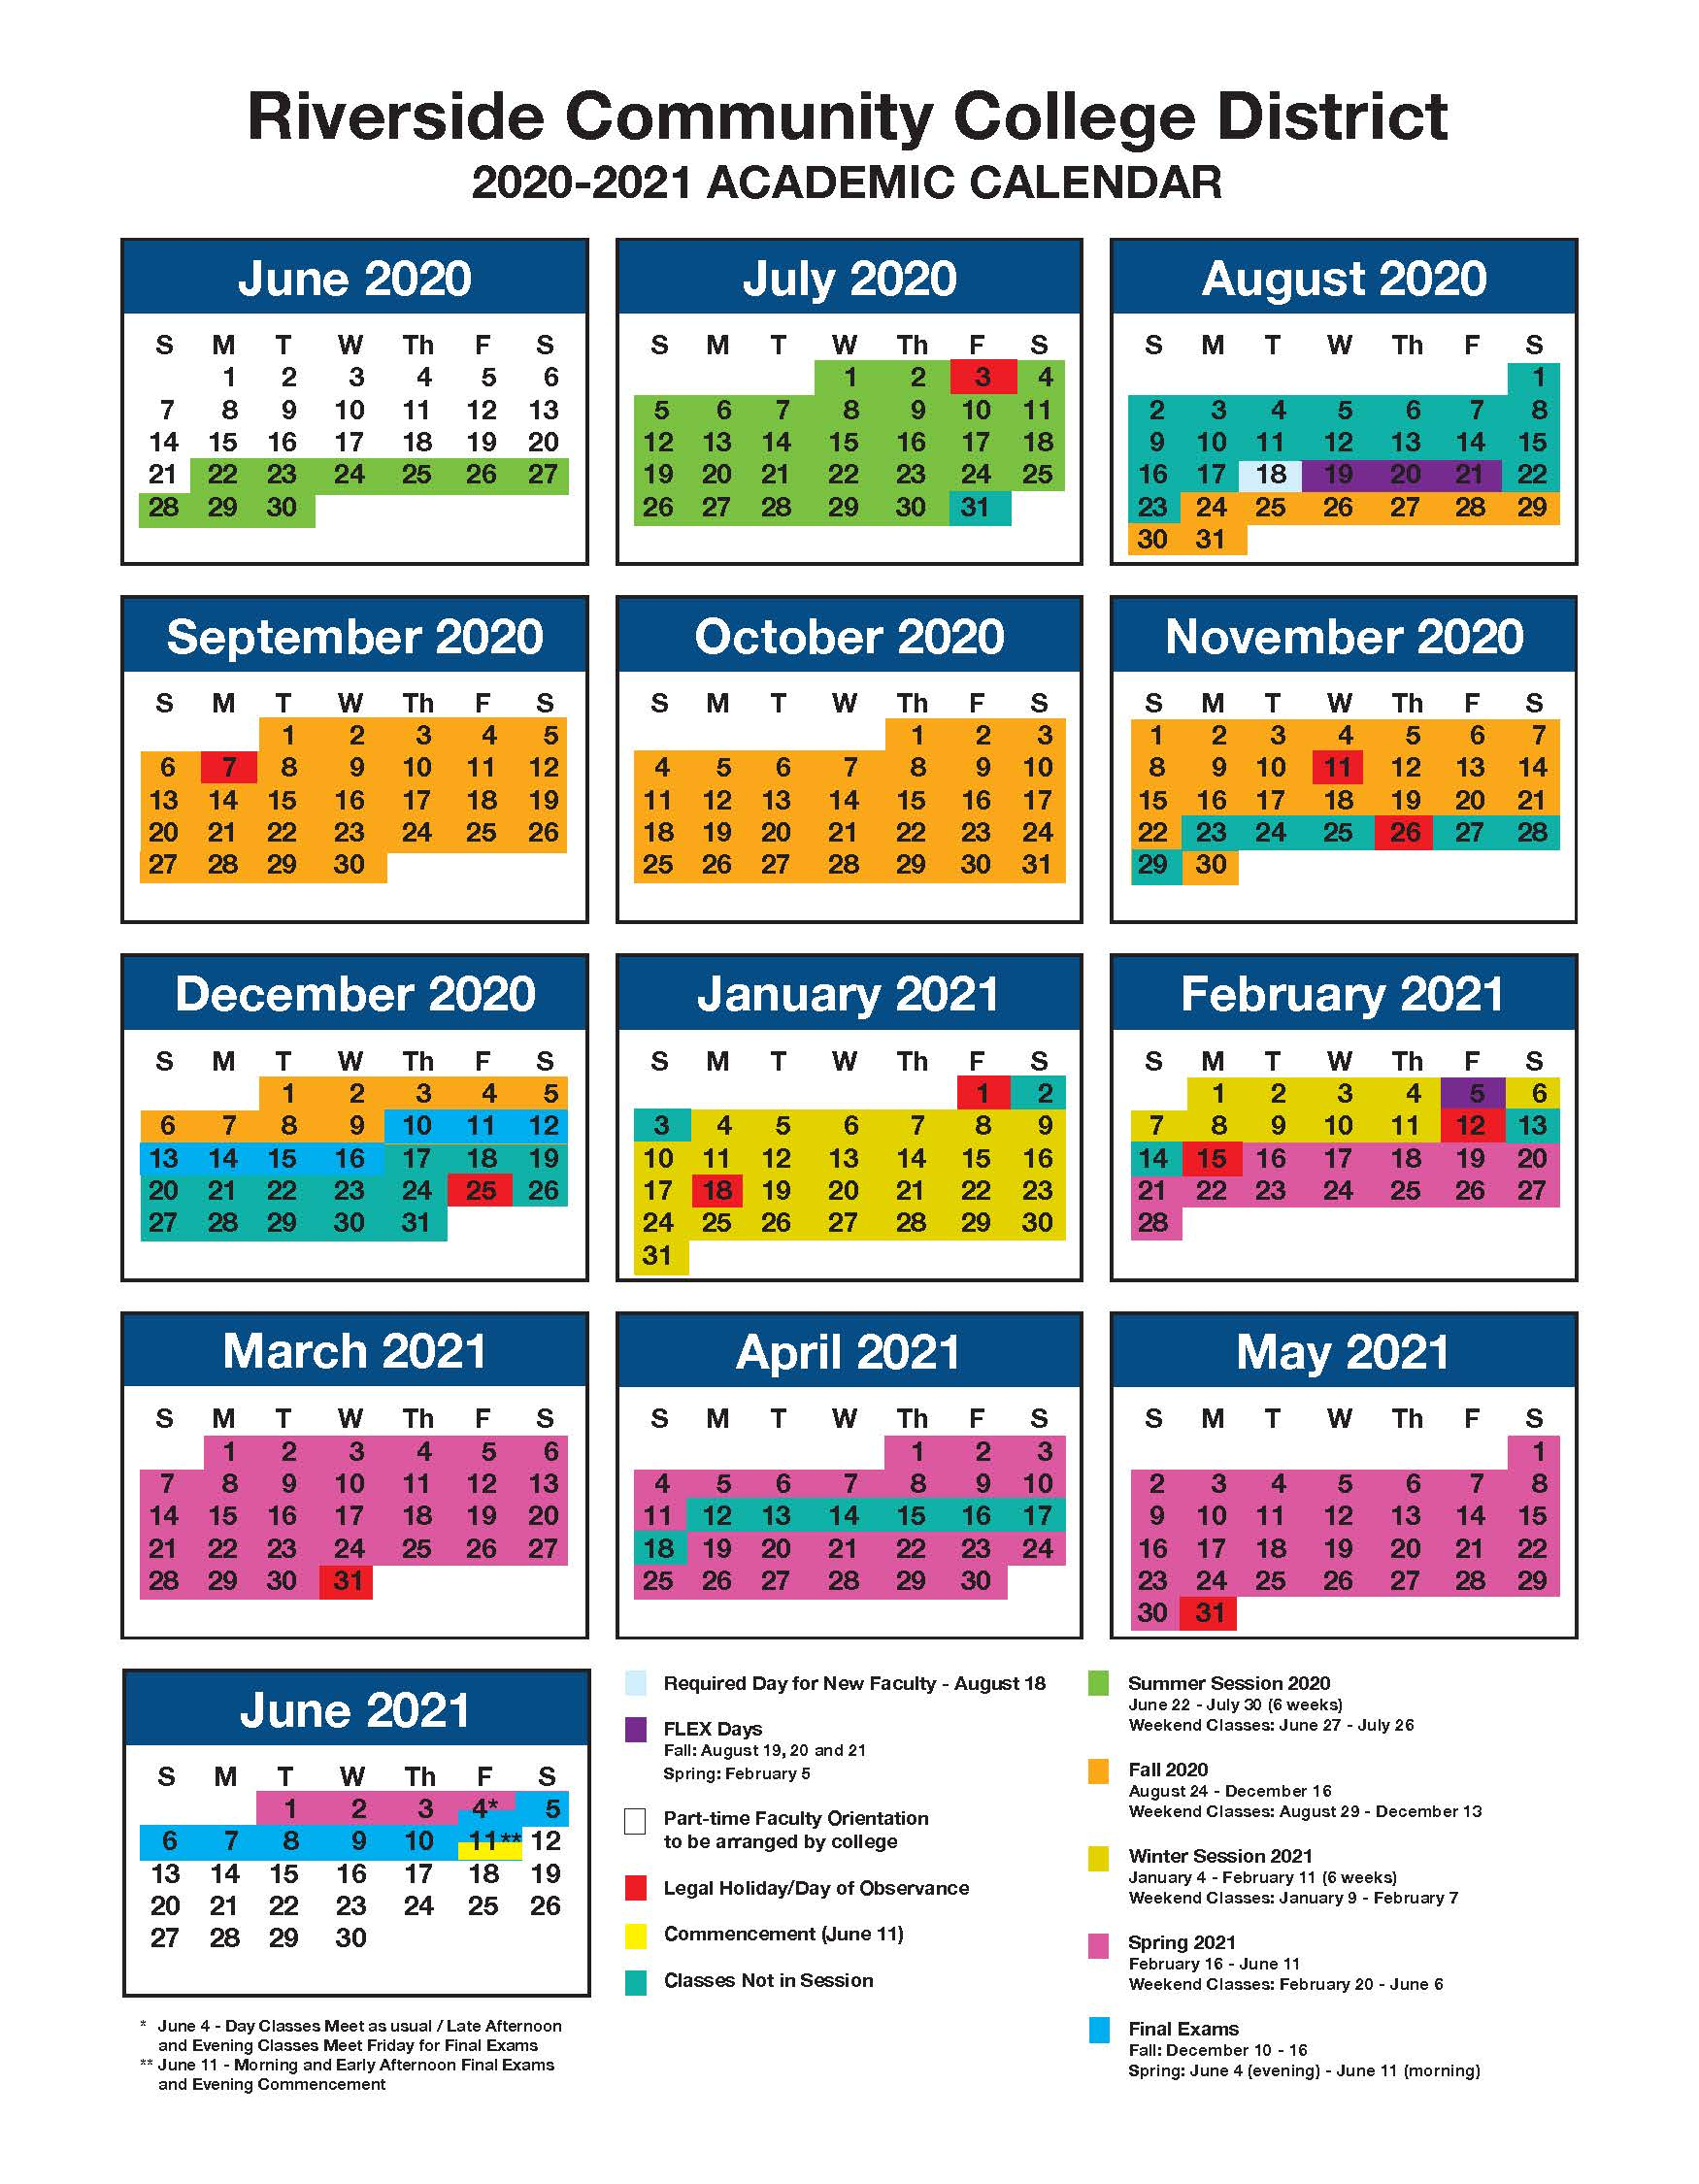 University Of Southern California School Calendar 2021 With University Of Phoenix 2021 Calendar